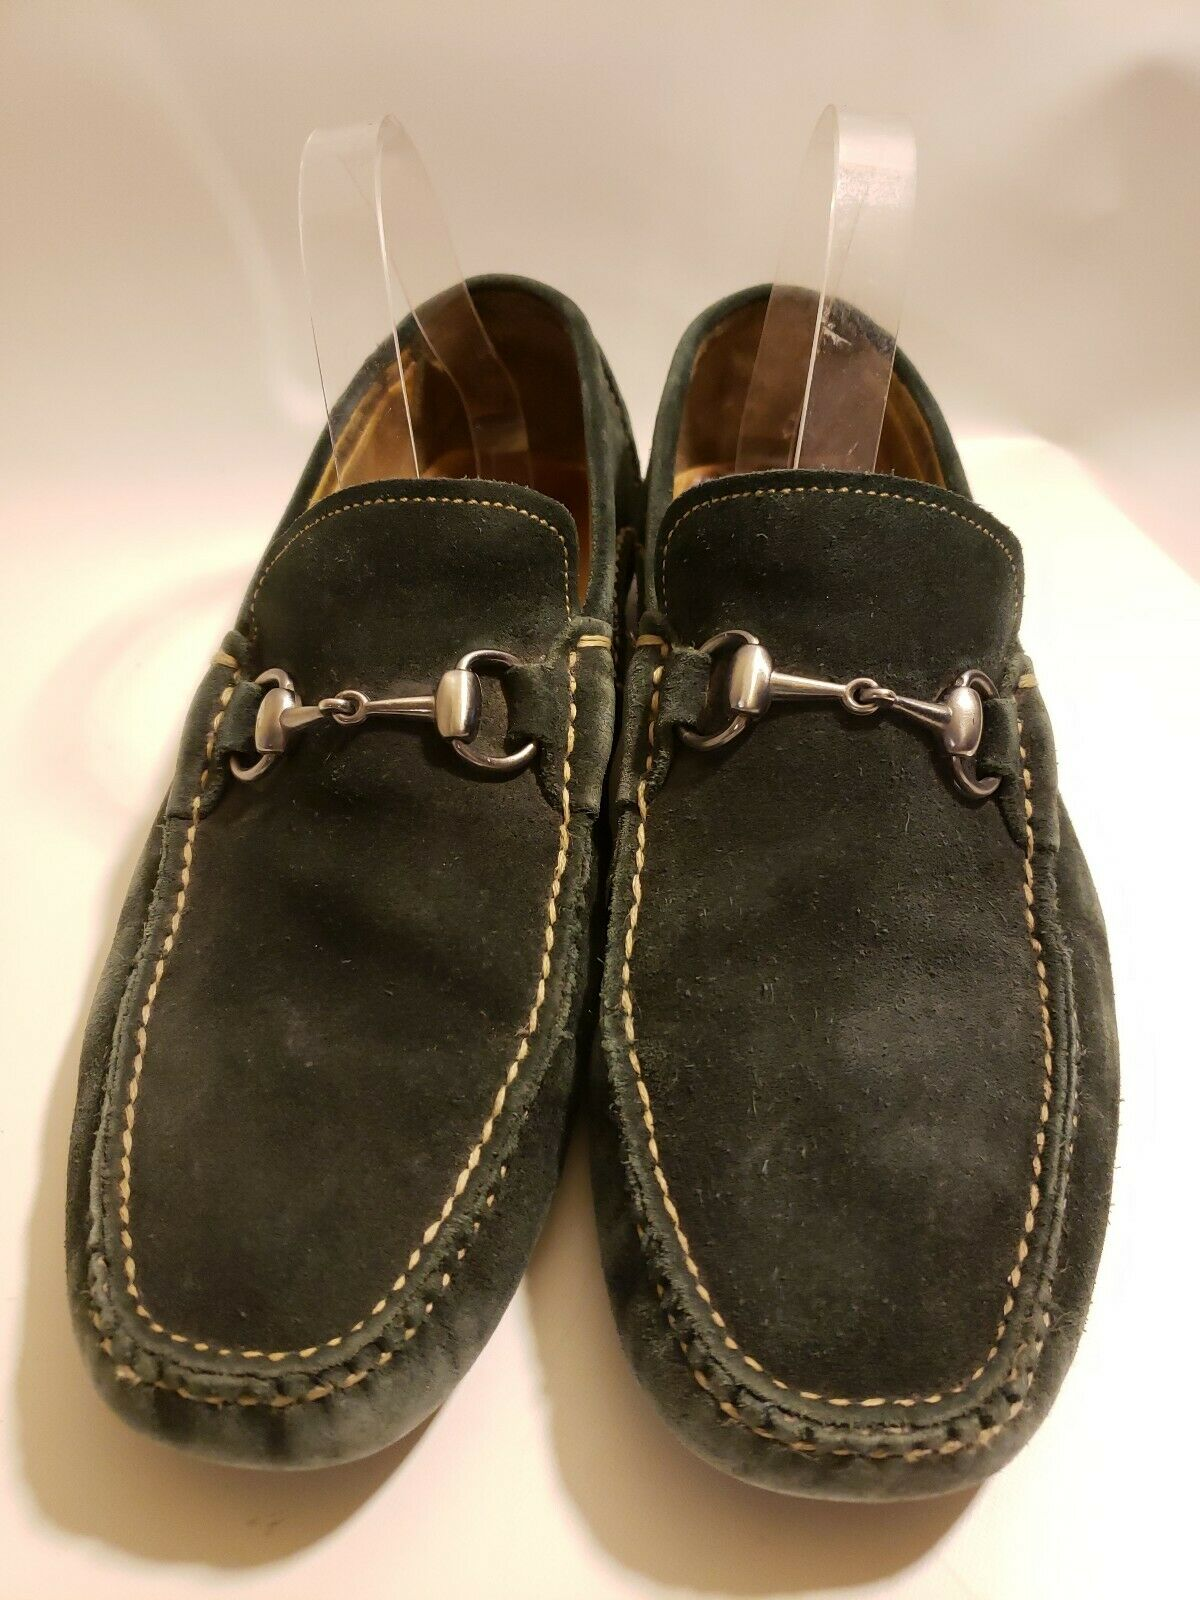 Peter Millar Men's Suede Leather Loafers Moccasin Driving shoes Size 8.5 M